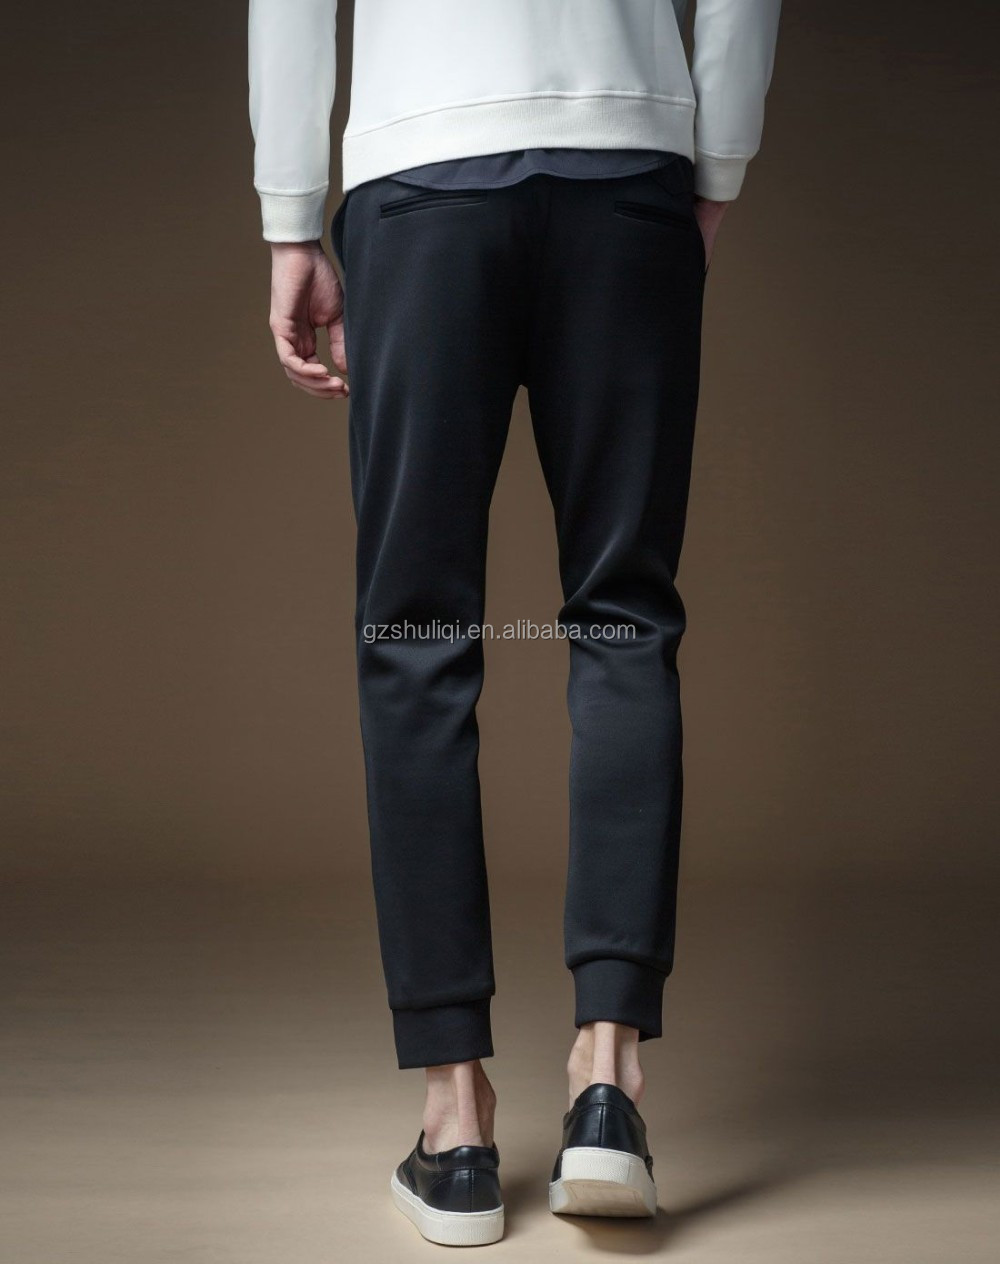 2016 fashion 100 cotton lounge pants new style boys trousers for men